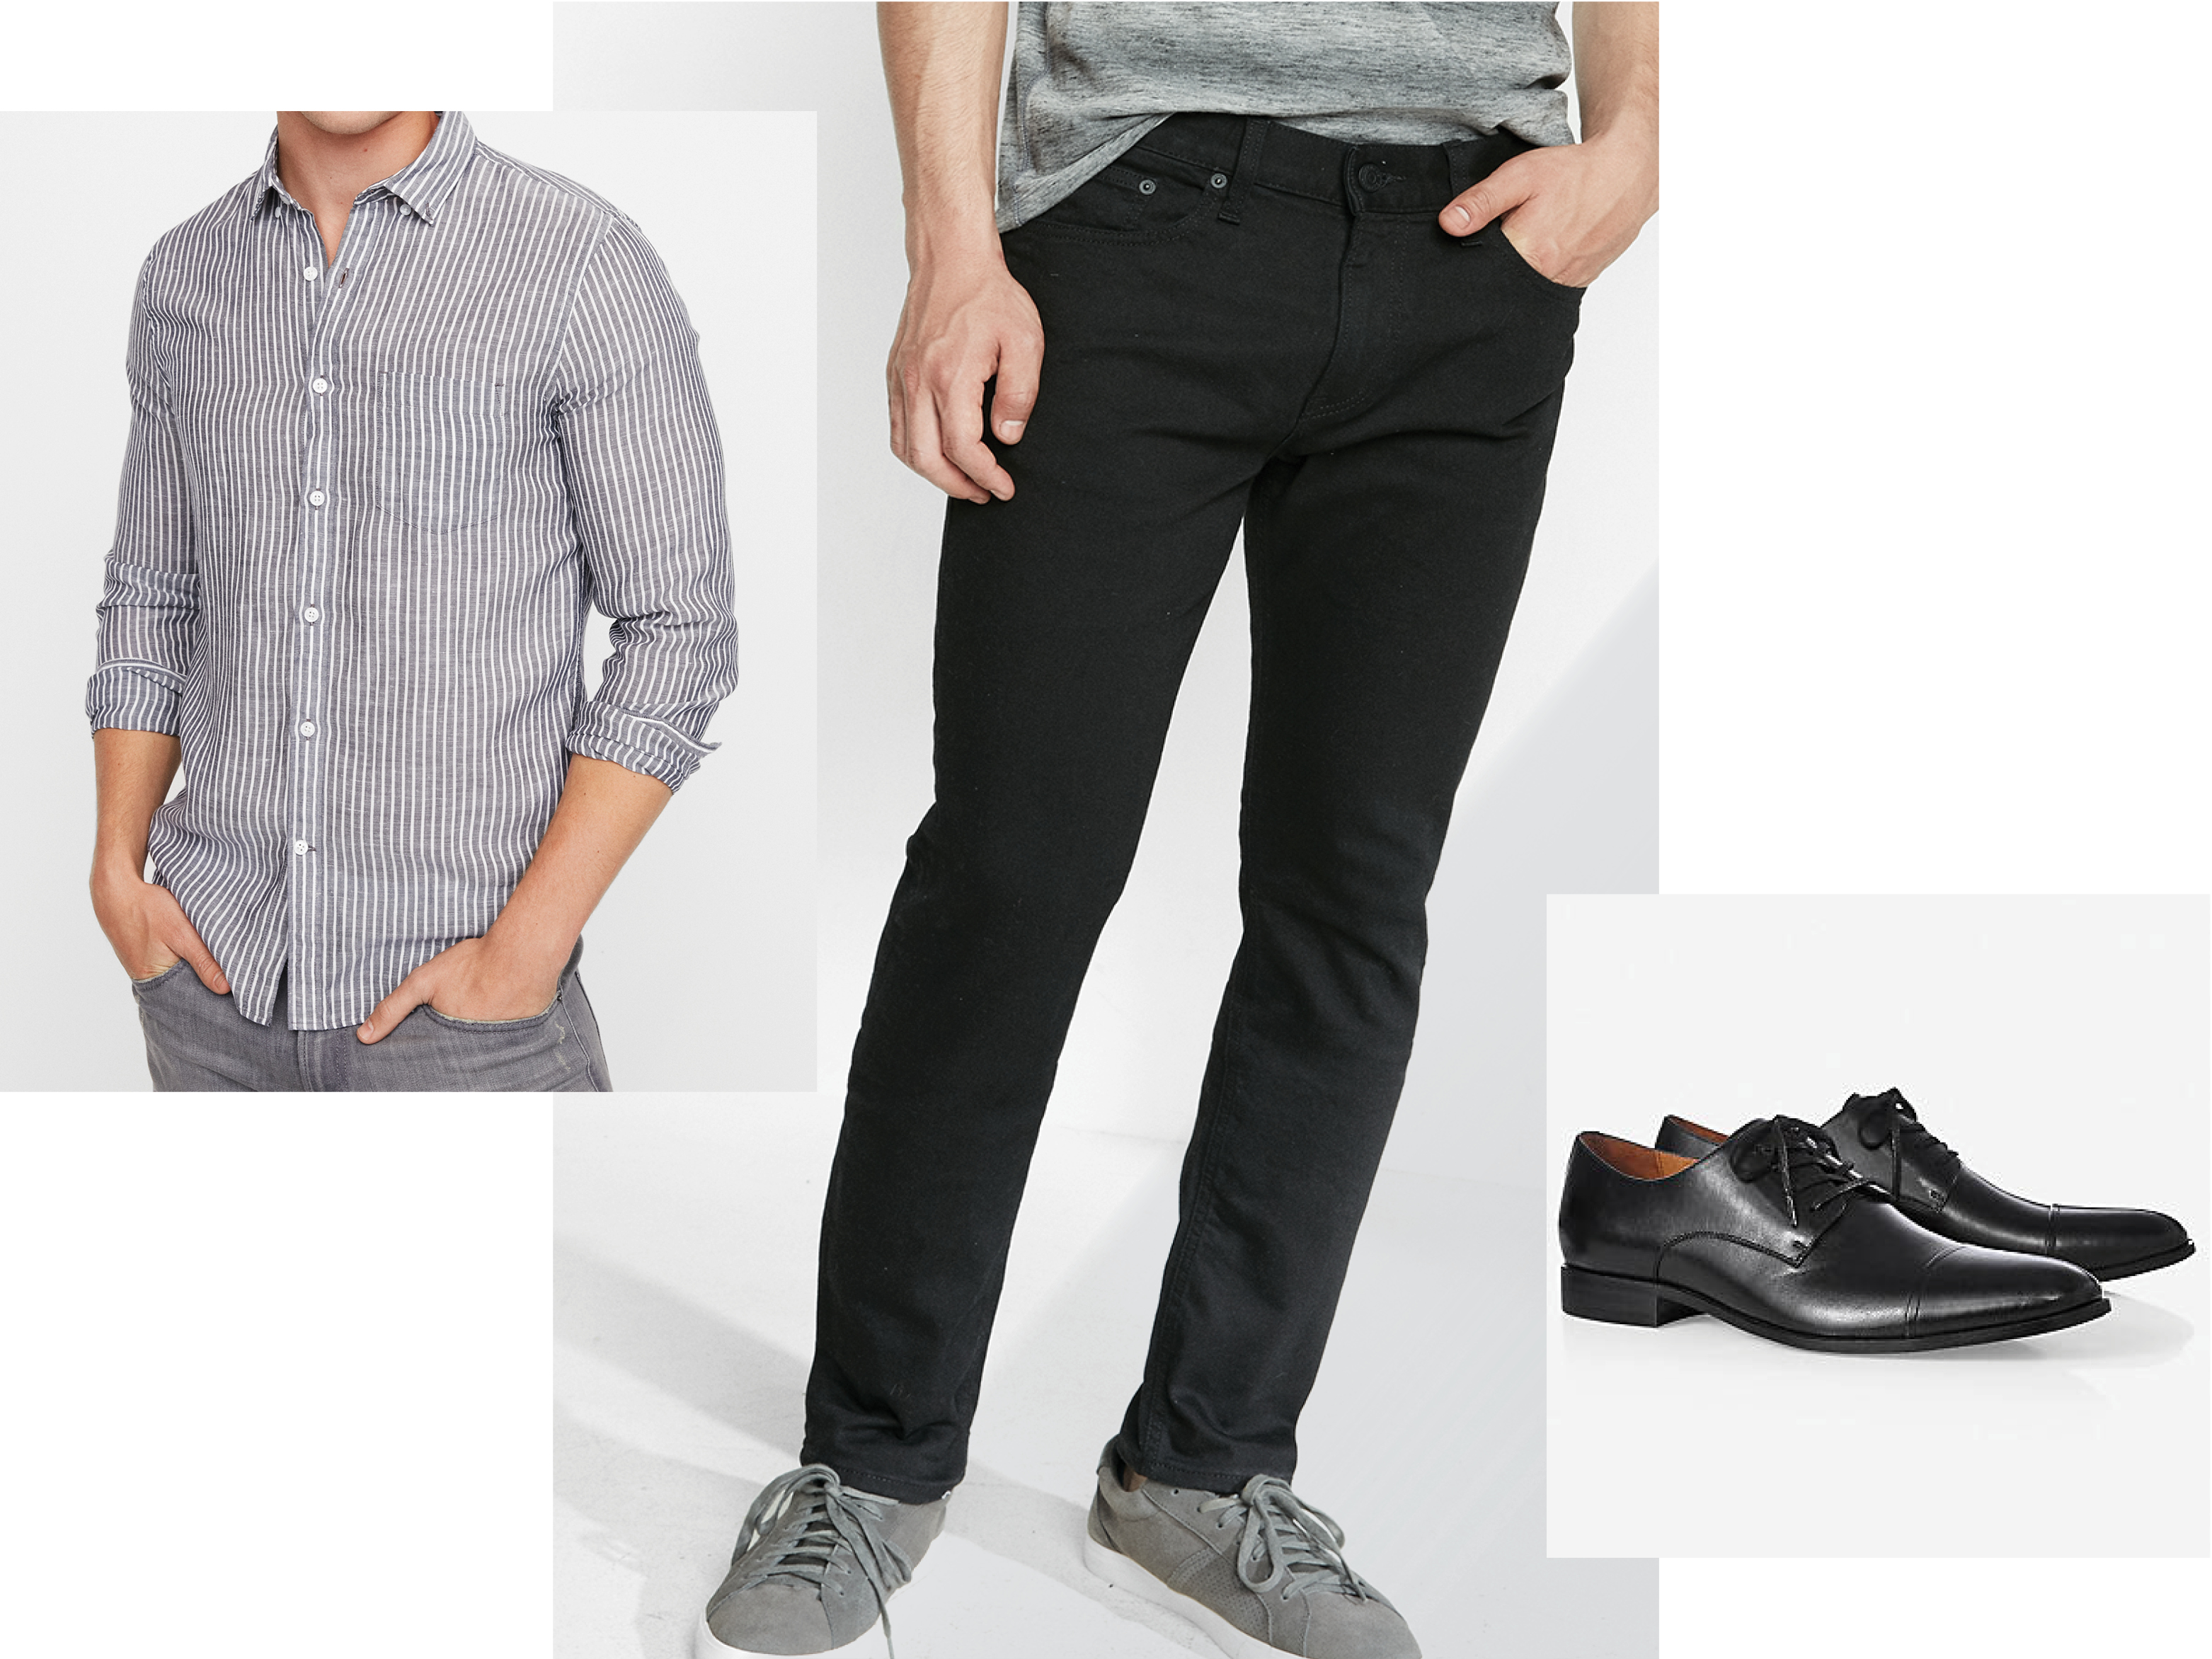 mens-striped-shirt-black-jeans-dress-shoes